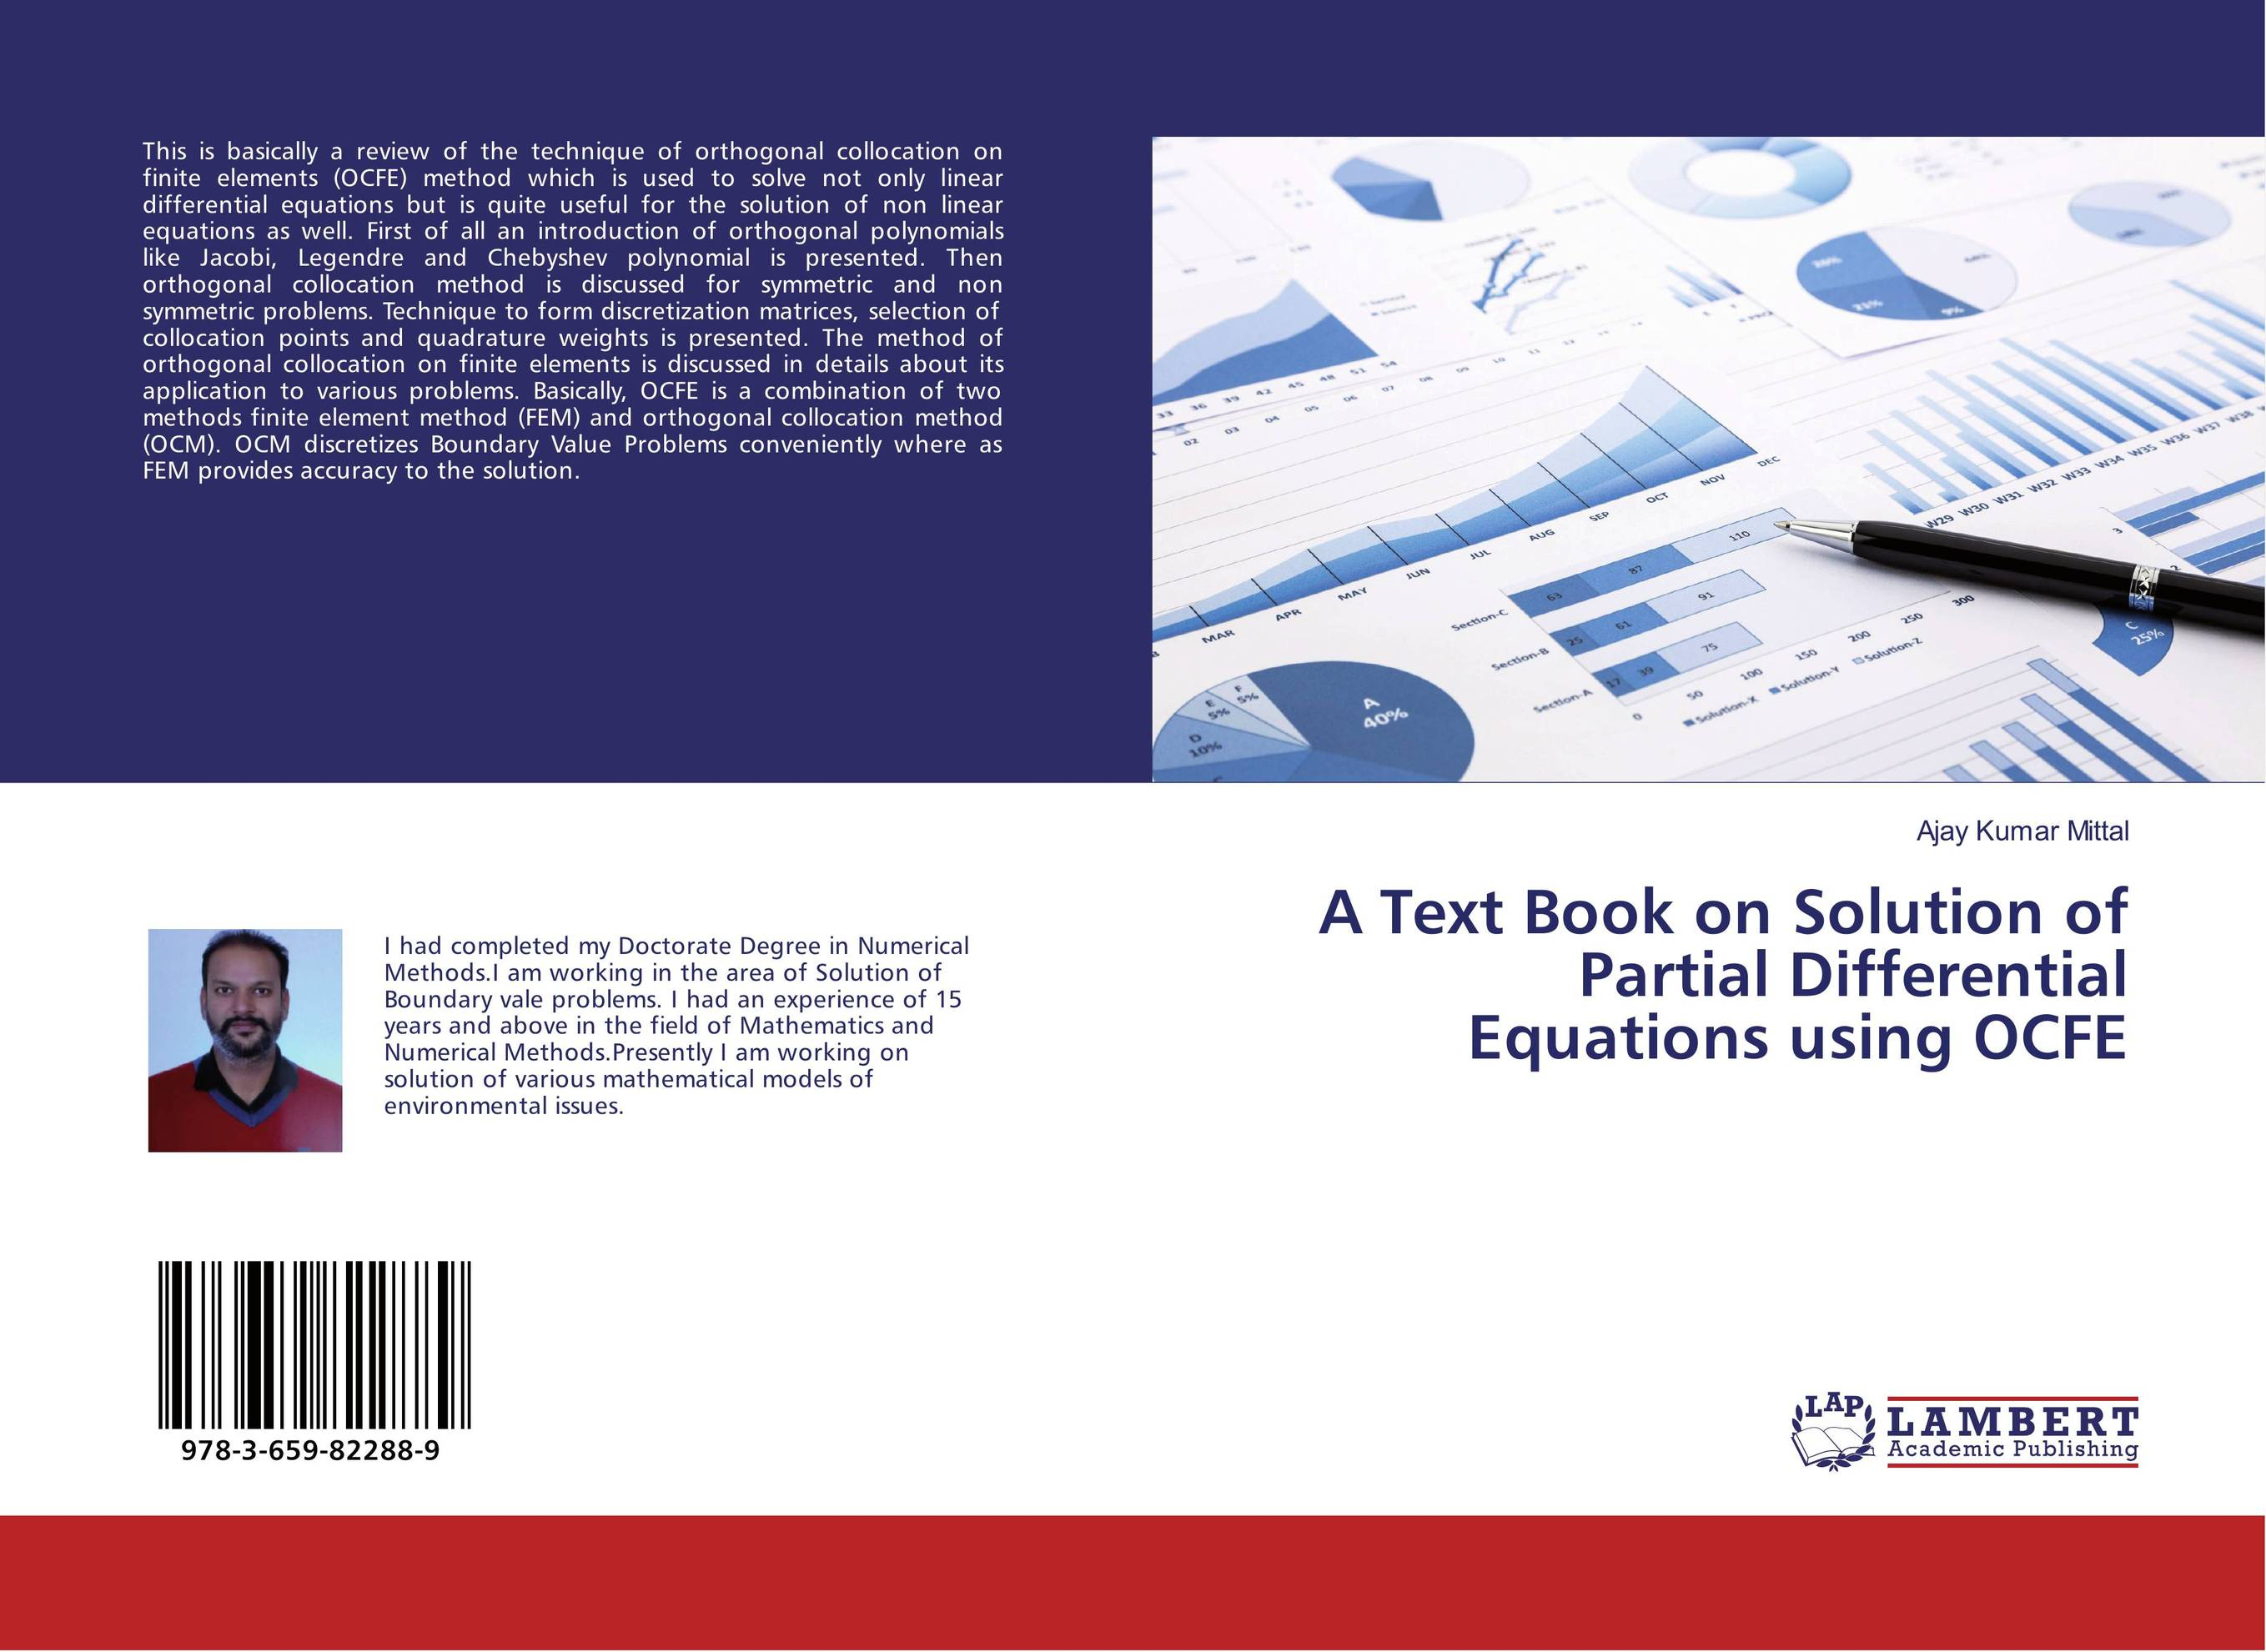 A Text Book on Solution of Partial Differential Equations using OCFE collocation and preposition sense